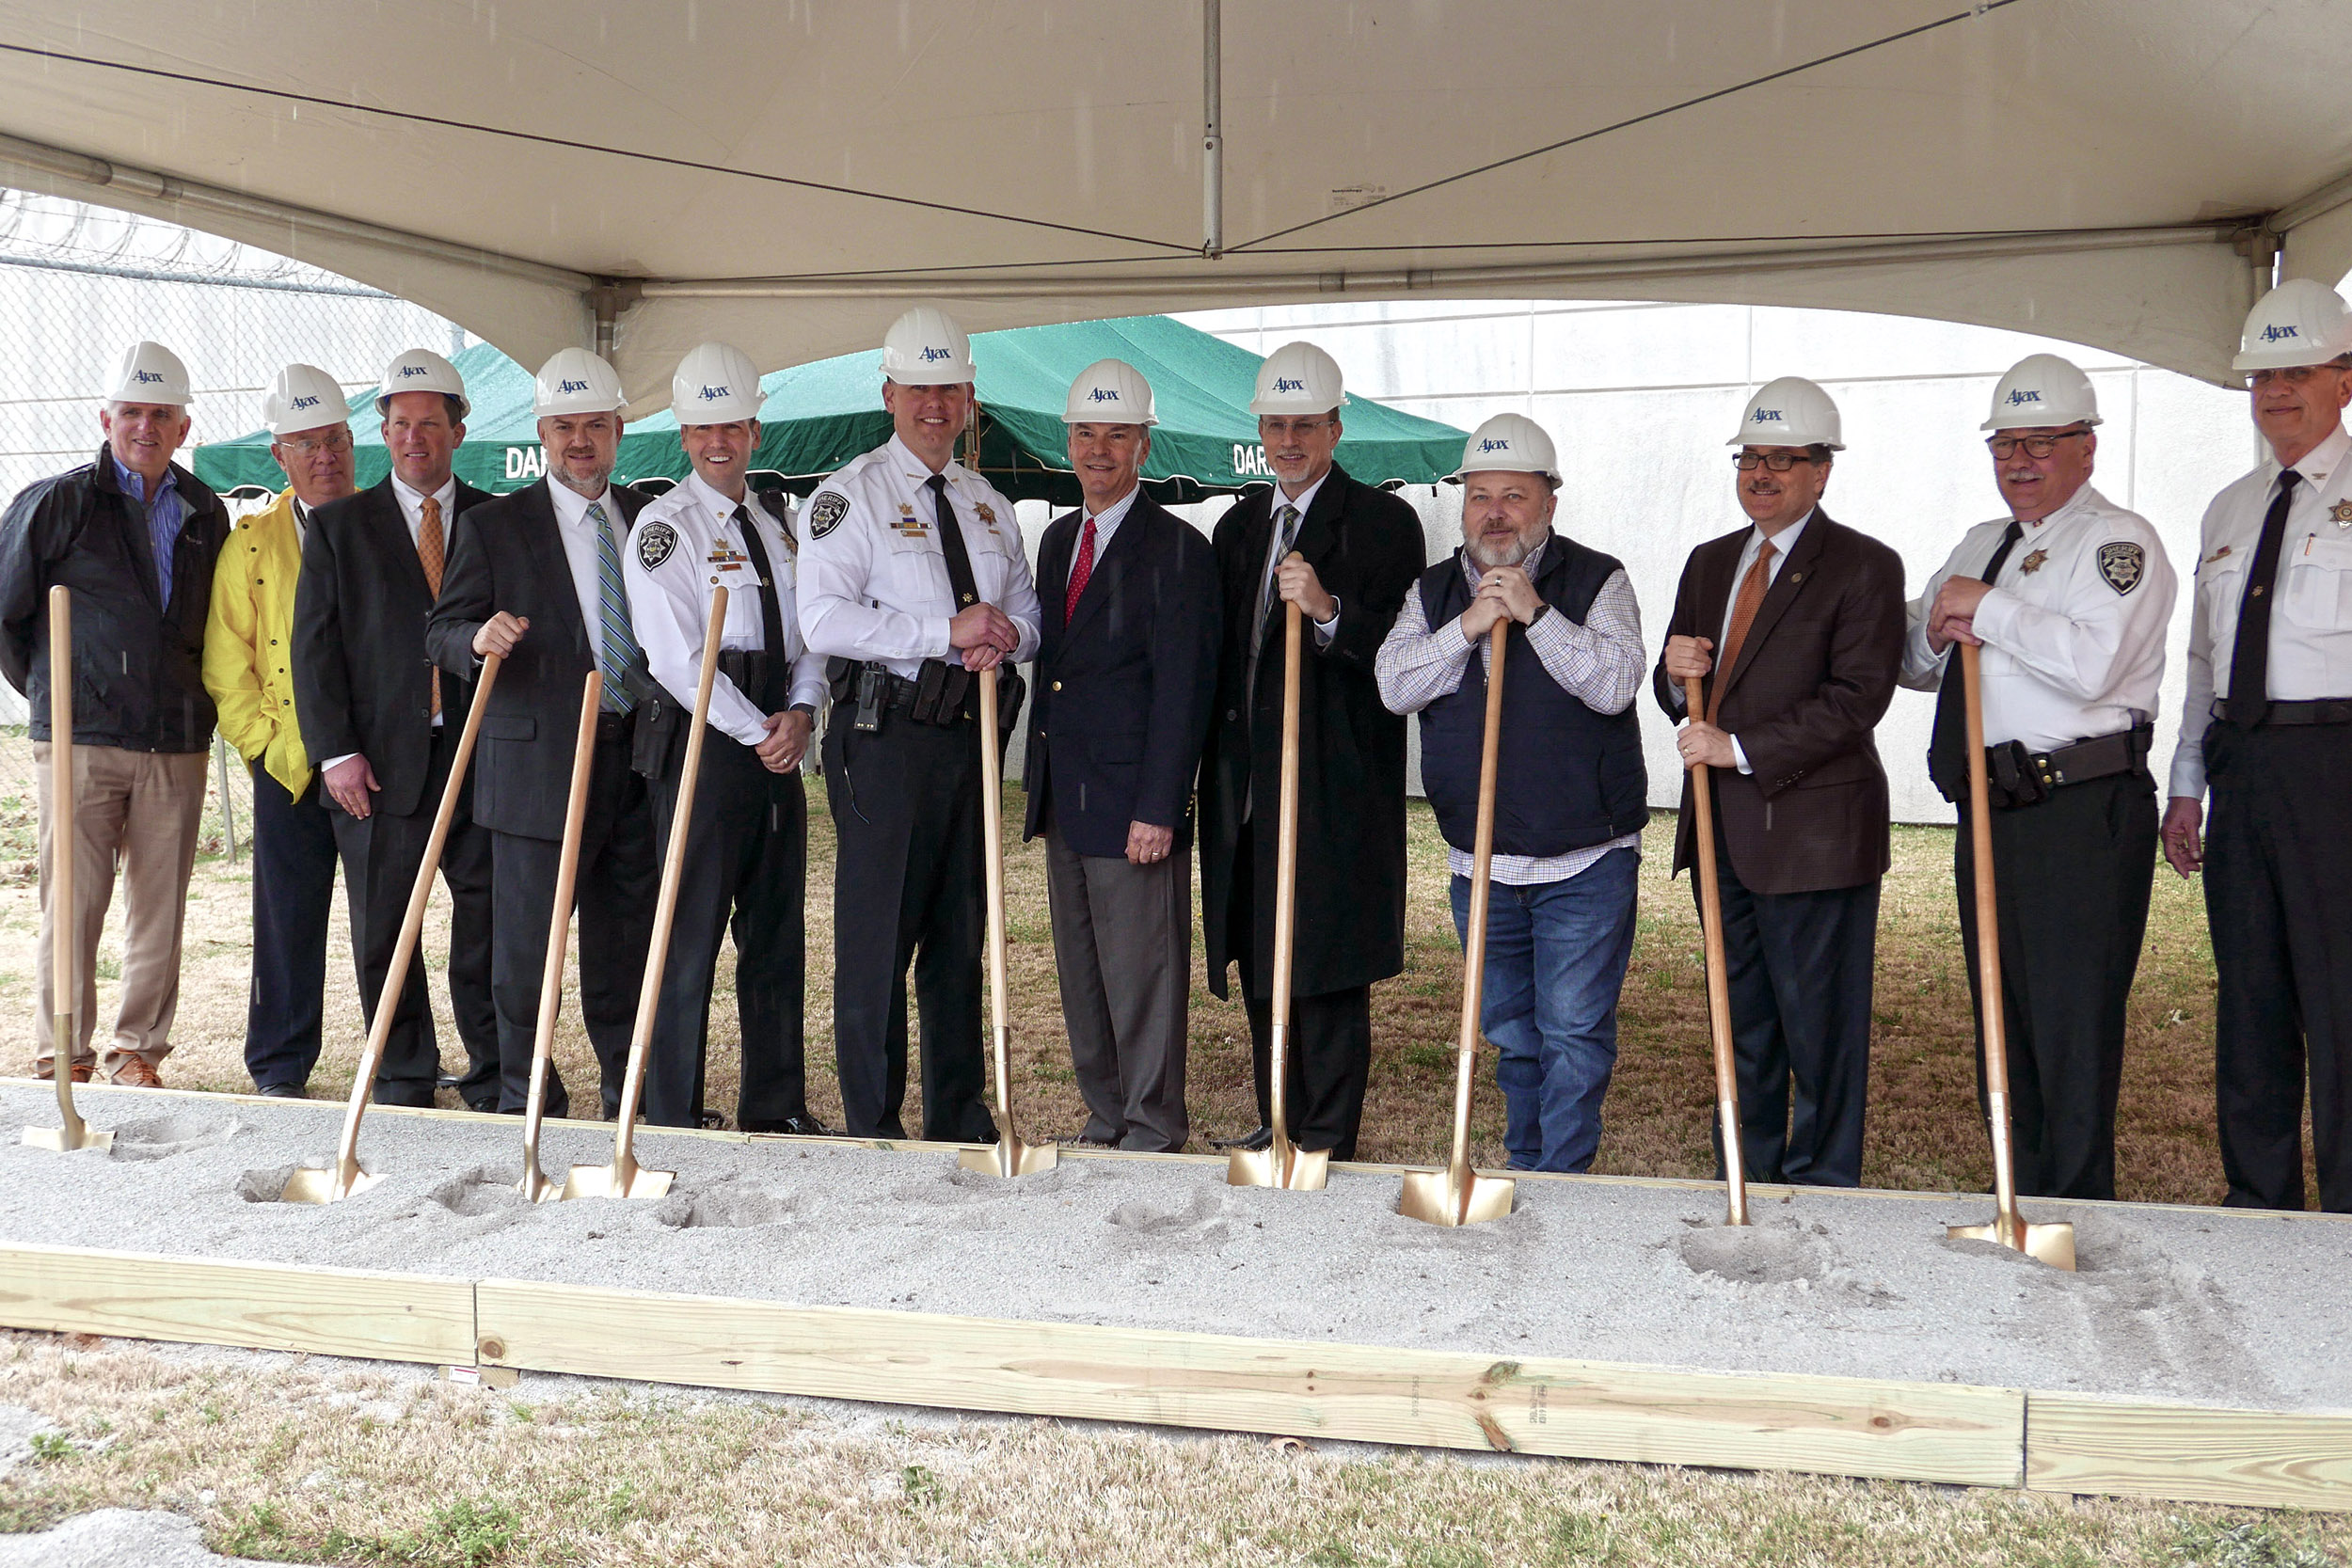 The Sheriff, Members of the Sheriff's Department, County Officials, and Members of the Design and Construction Team gather for the ground breaking